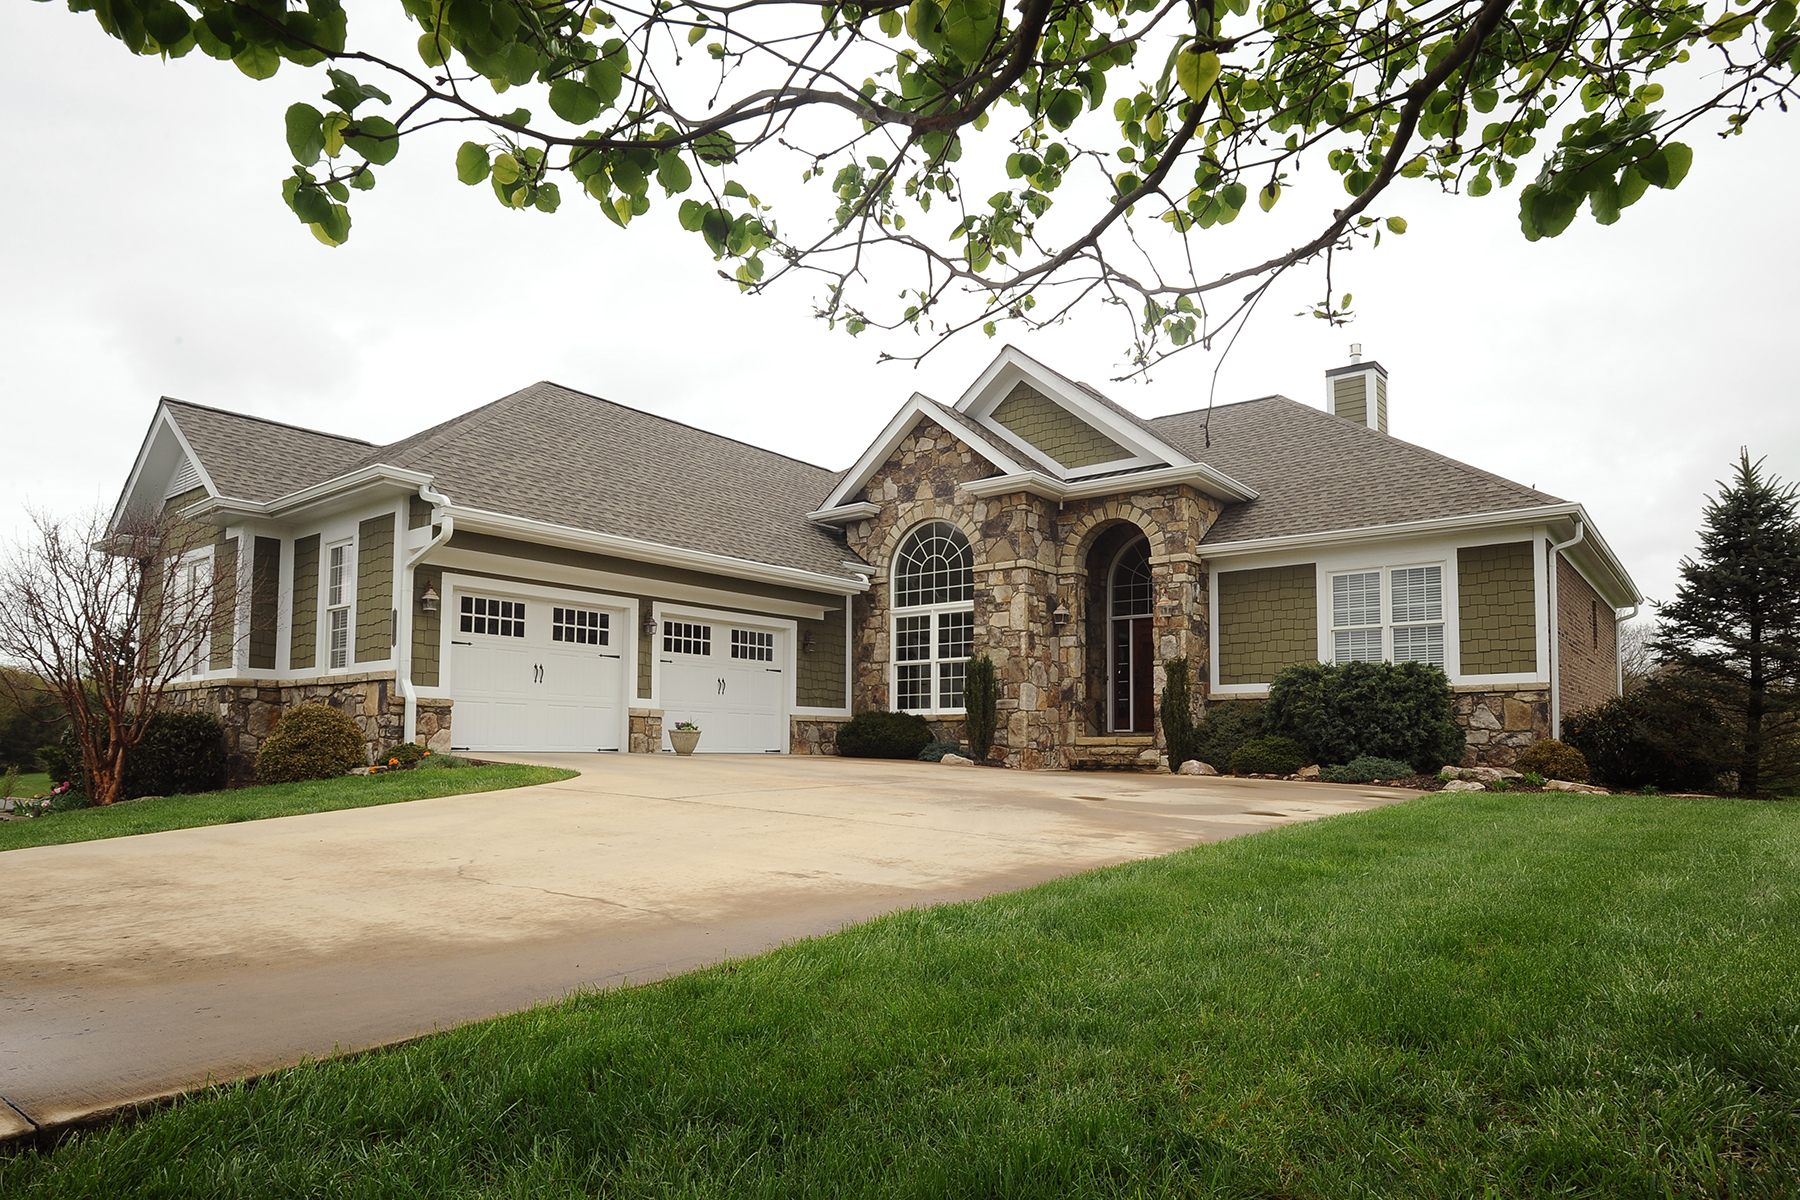 Single Family Home for Sale at THE RESERVE 113 Creek Side Ct Bristol, Tennessee 37620 United States